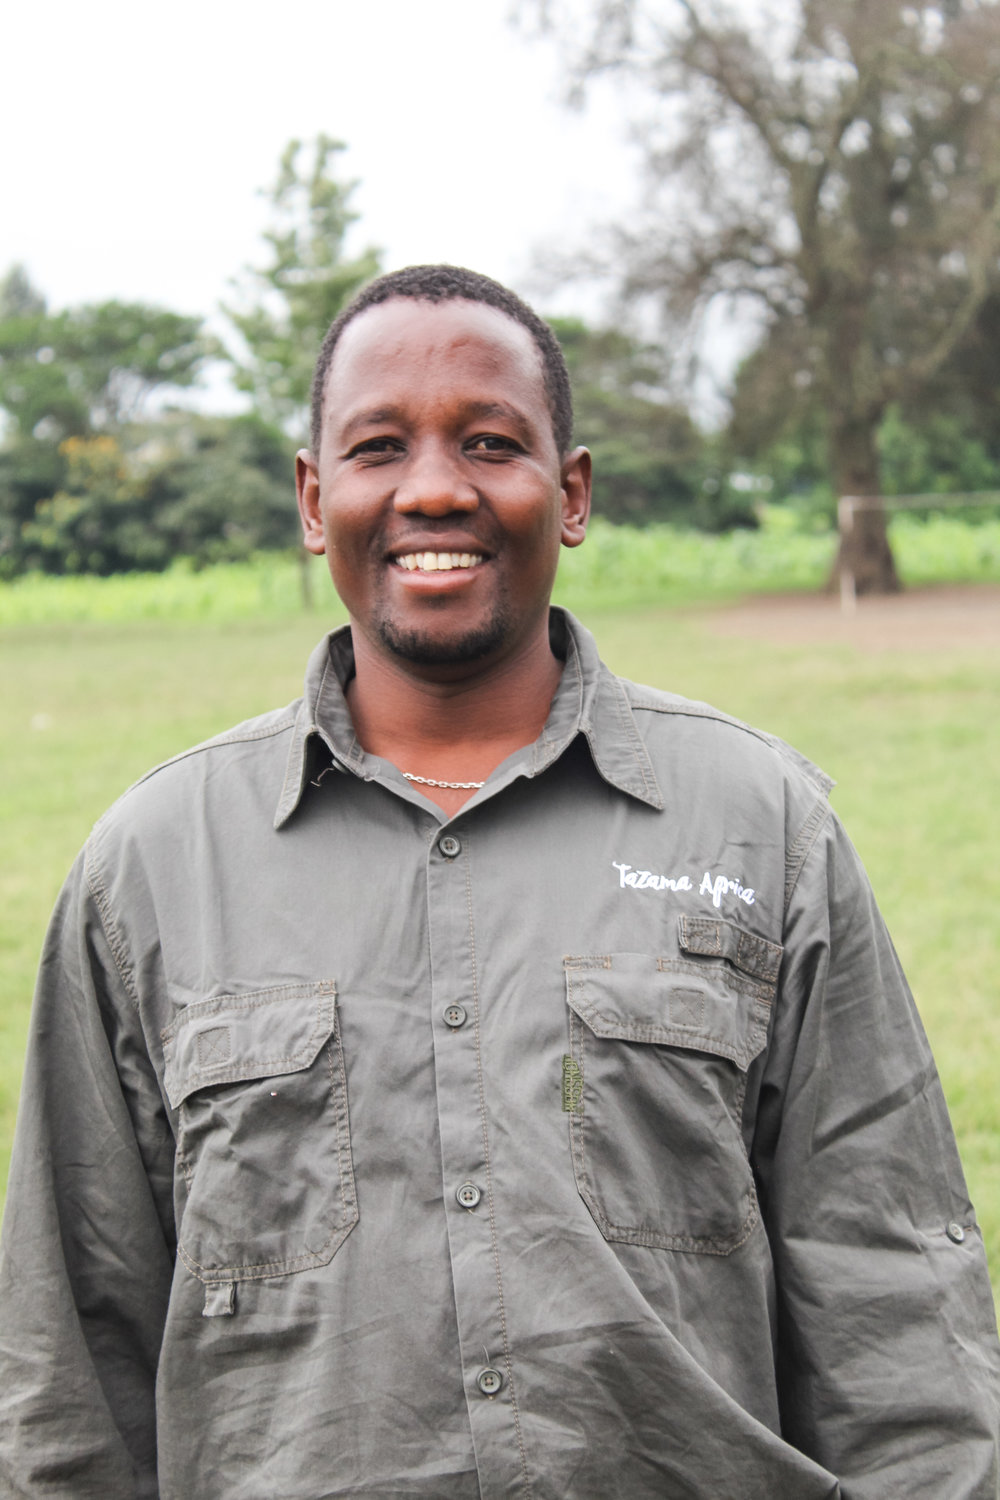 Safari, Safari Guide  His name says it all, he was born to do this! Safari's quiet confidence, great sense of humor and gentle nature make him a favorite for many of our guests. When he's not guiding, you'll often find him getting his hands dusty with his passion project, carpentry.